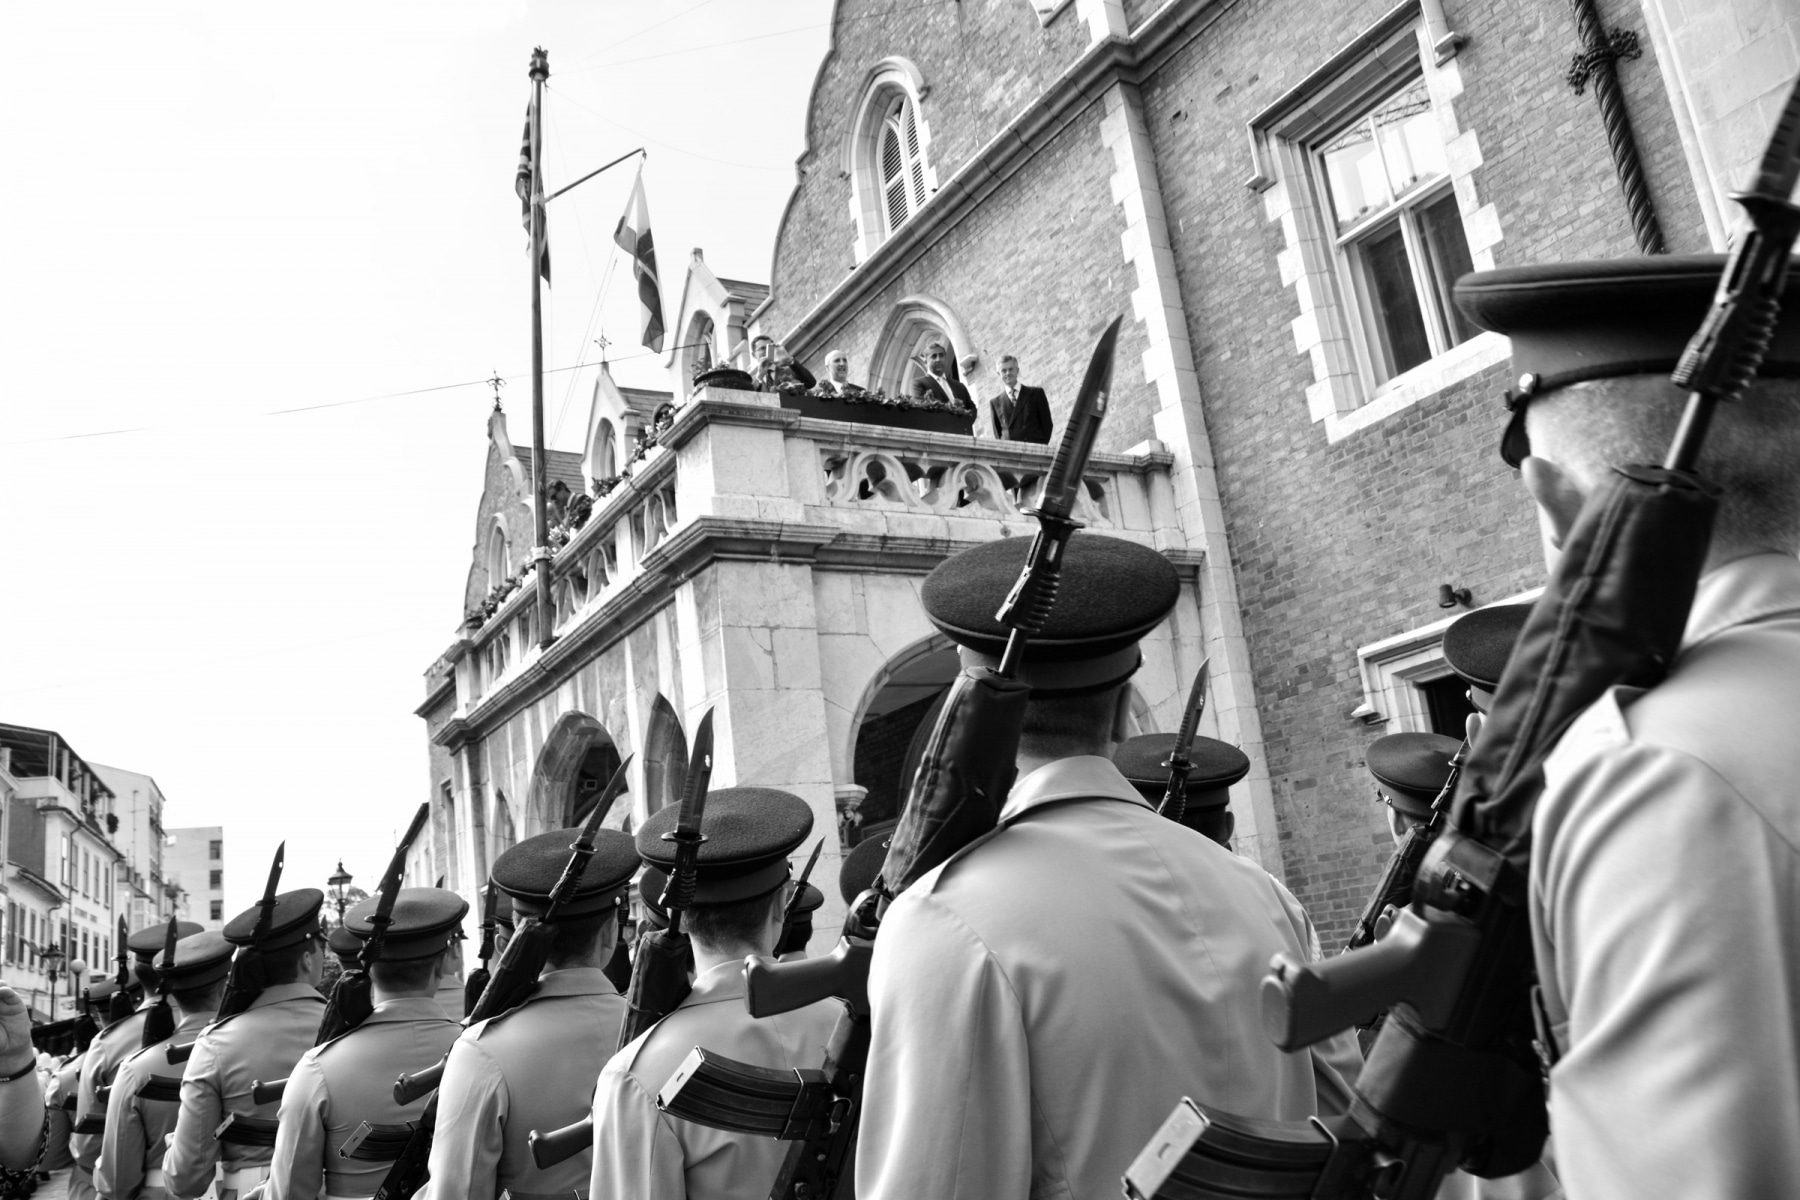 regiment-freedom-of-city-0099-bw_15439625722_o